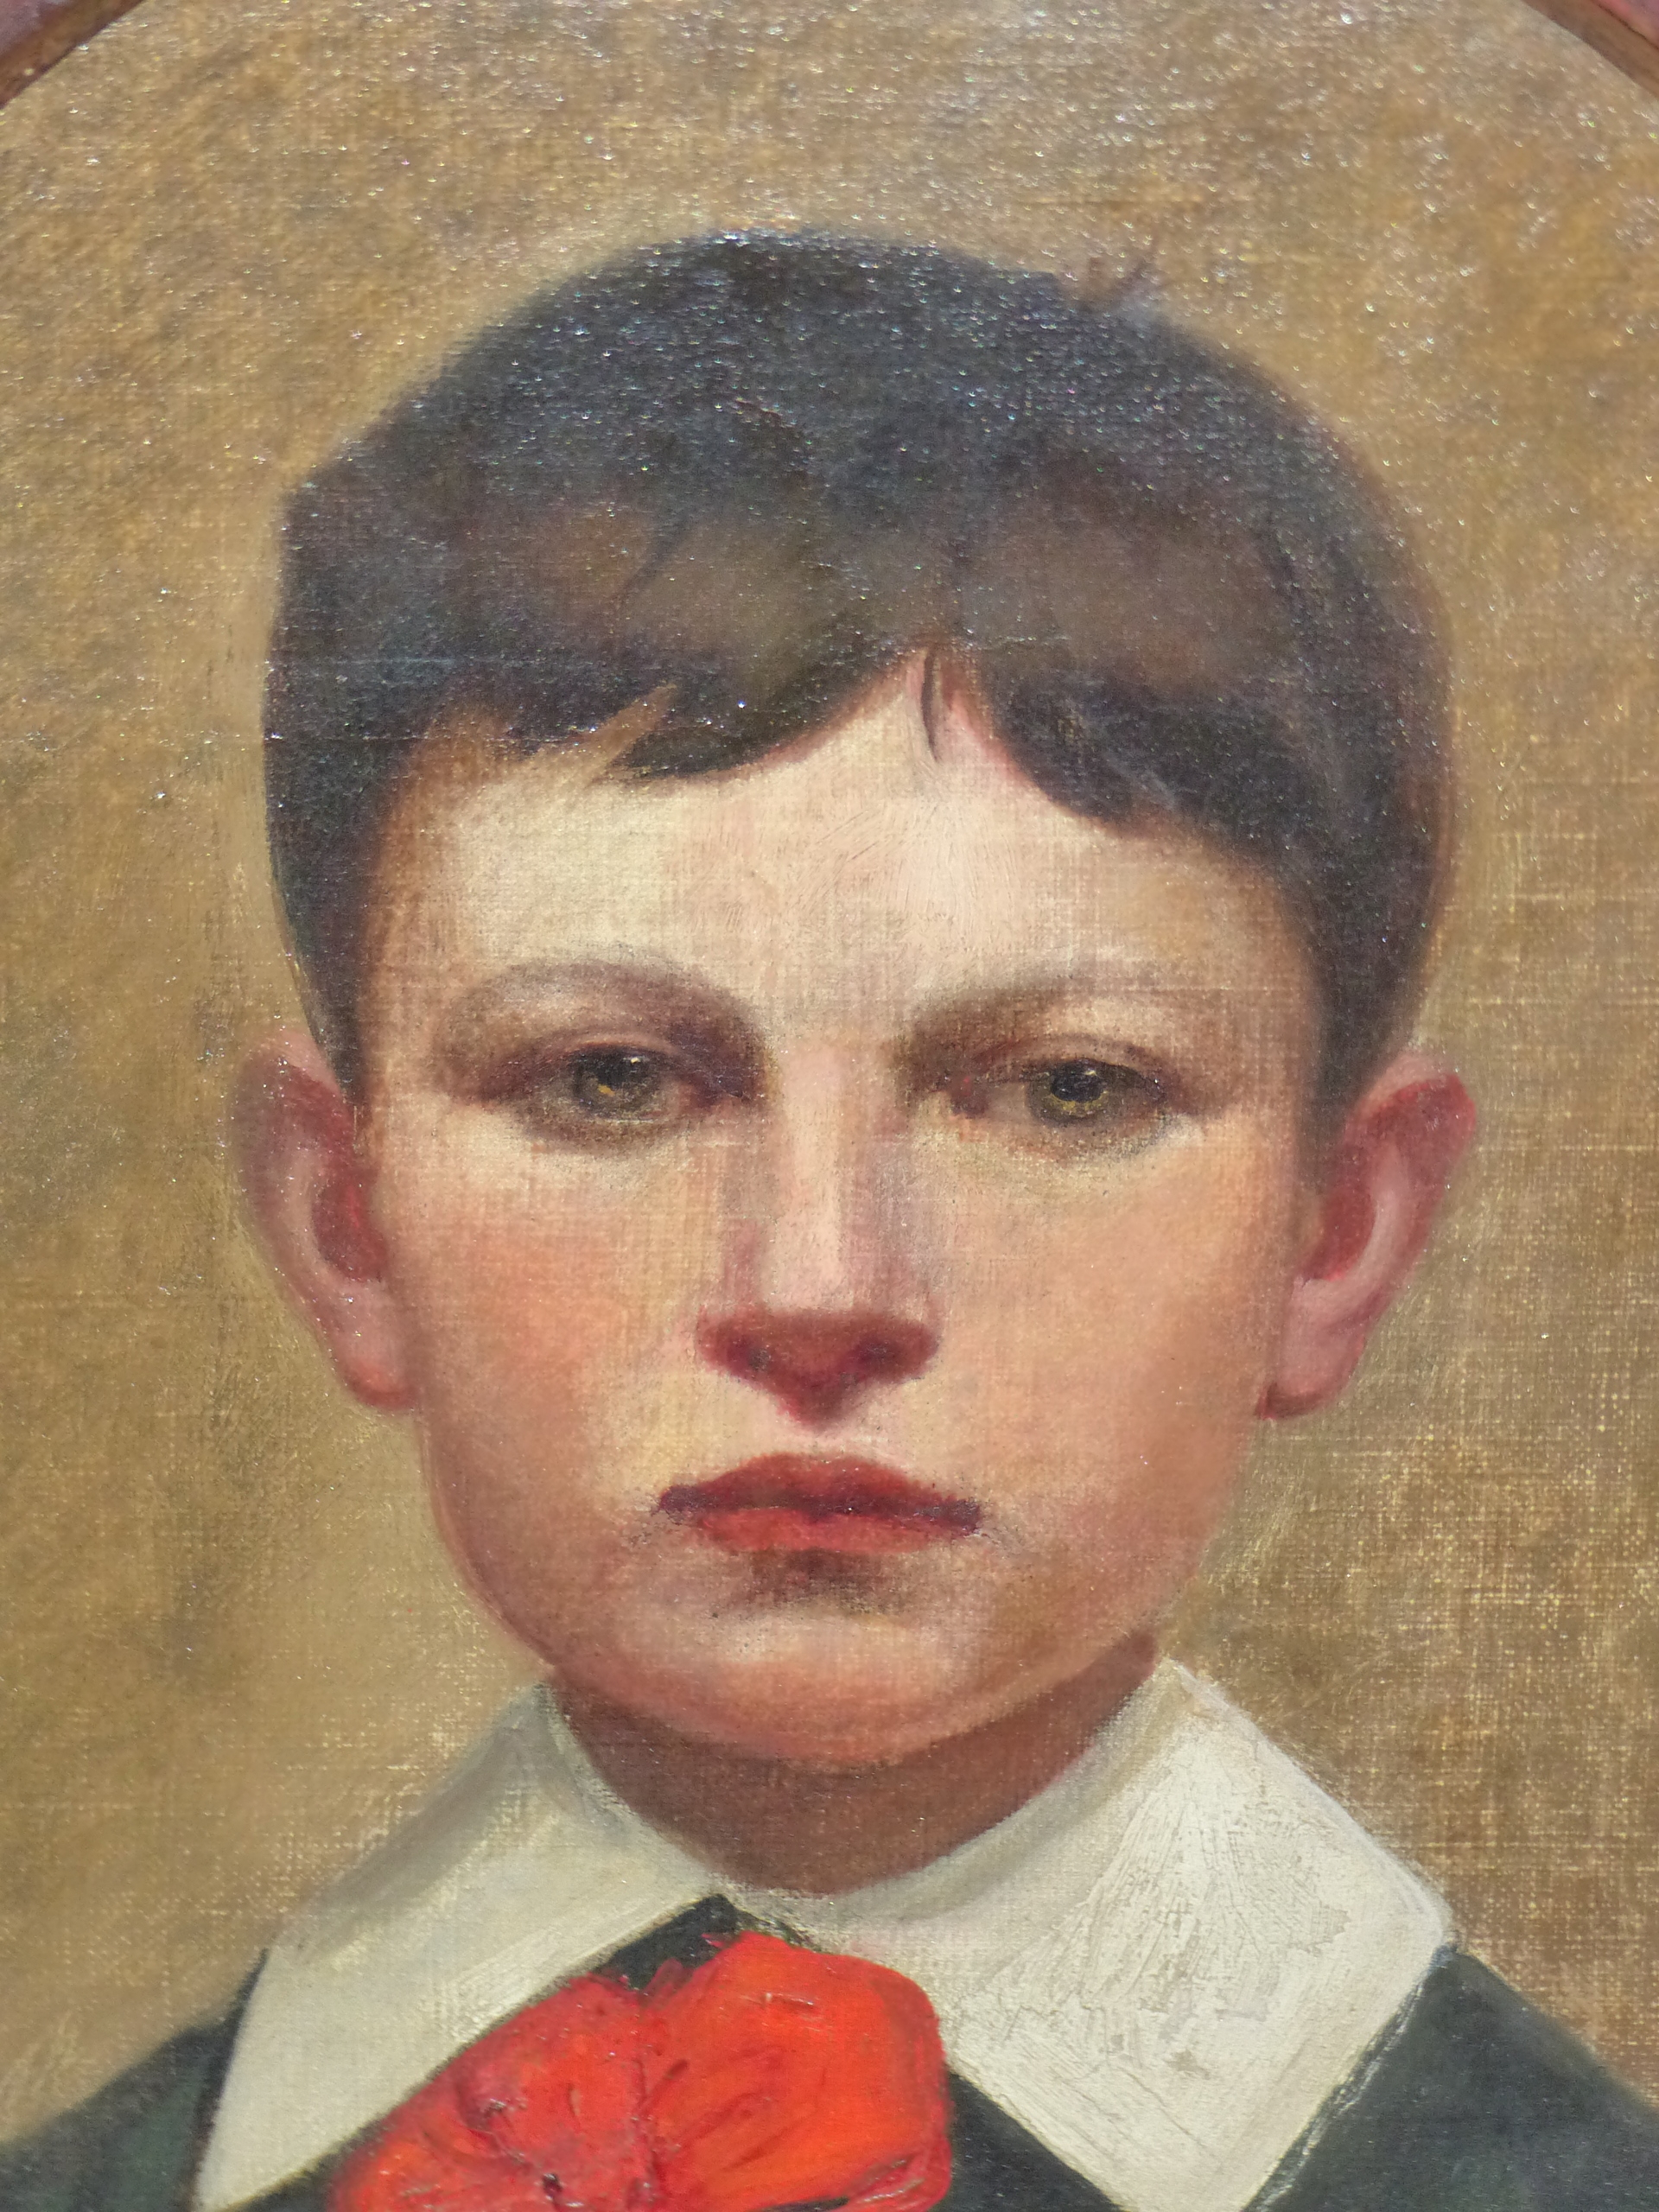 19th CENTURY CONTINENTAL SCHOOL FEIGNED OVAL PORTRAIT OF A BOY. OIL ON CANVAS DECORATIVE PAINTED - Image 3 of 7